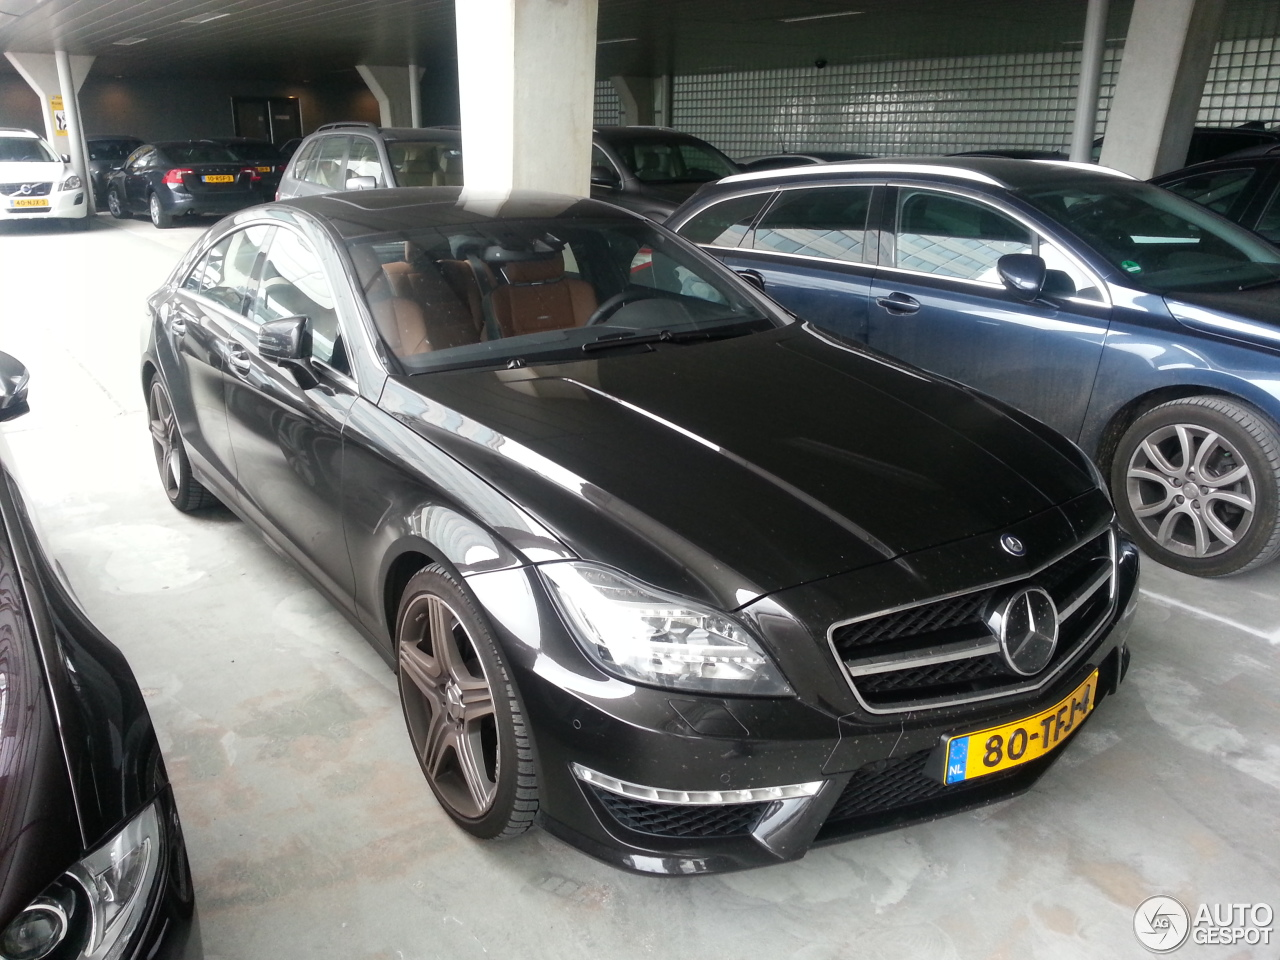 Mercedes benz cls 63 amg c218 13 june 2013 autogespot for 2013 mercedes benz cls 63 amg